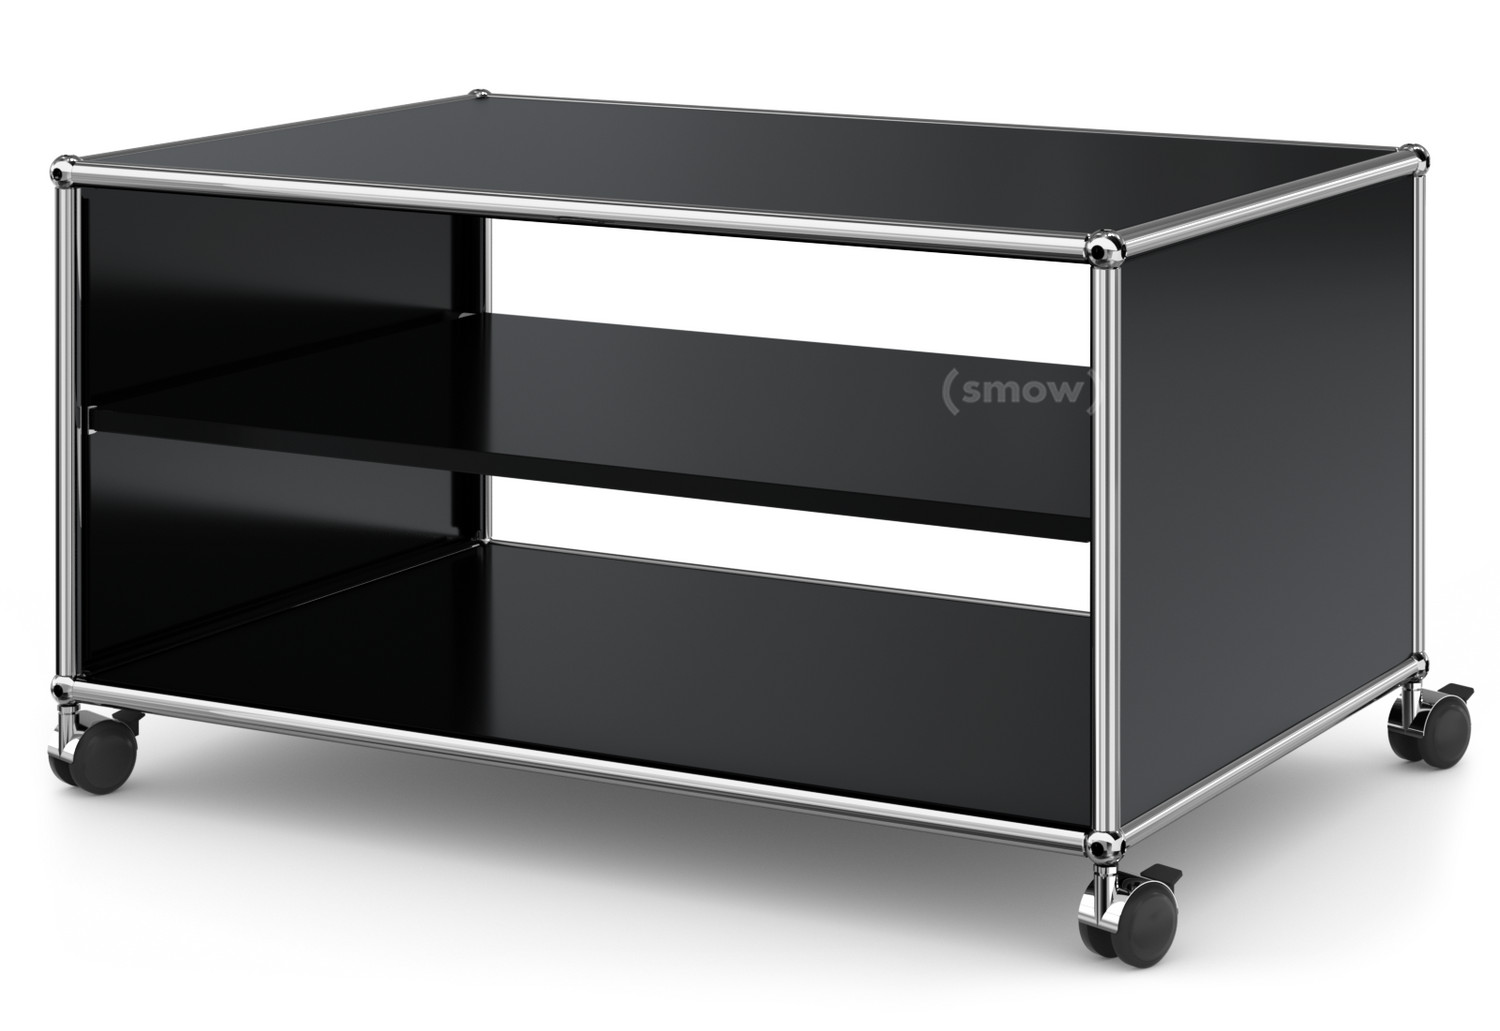 usm haller tv lowboard auf rollen offen graphitschwarz ral 9011 von fritz haller paul. Black Bedroom Furniture Sets. Home Design Ideas